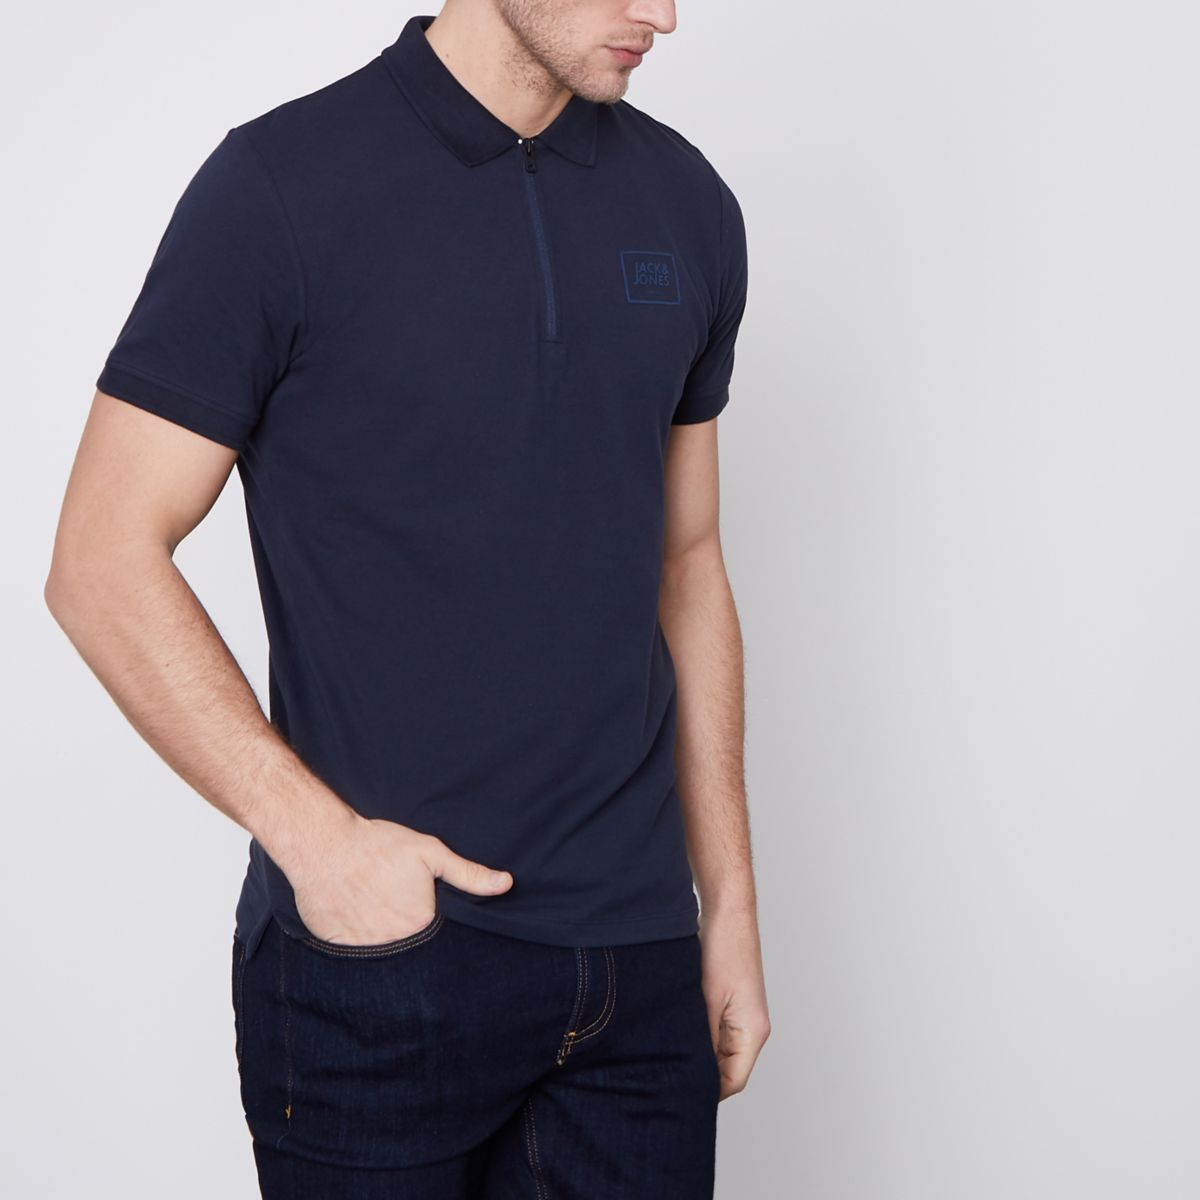 Navy Jack & Jones Core zip polo shirt